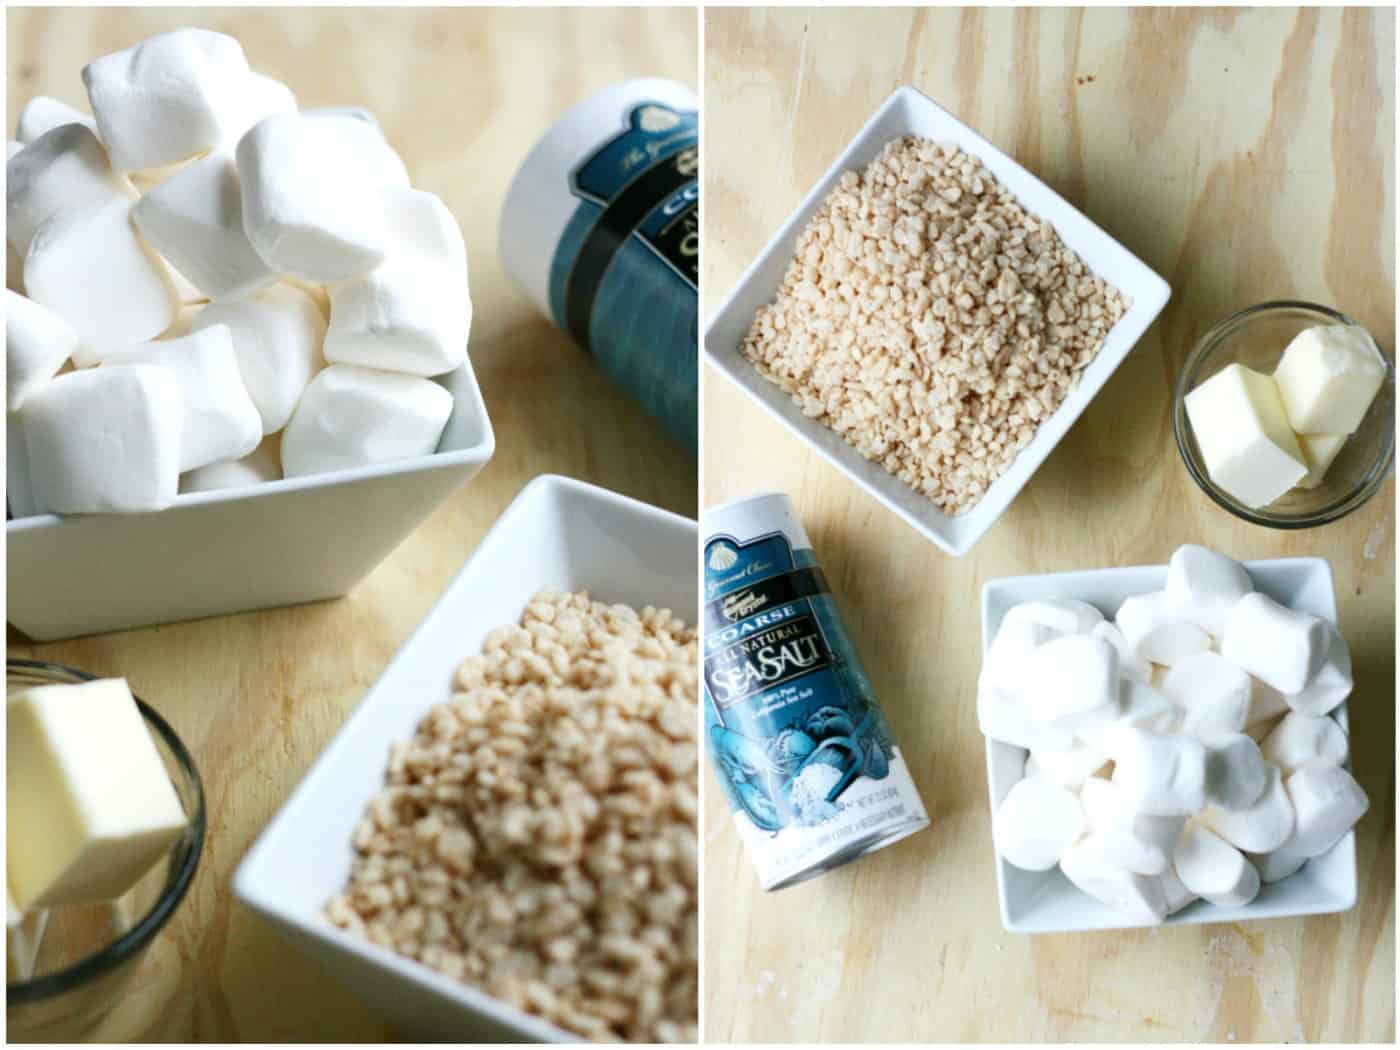 Rice krispies ingredients with sea salt and brown butter